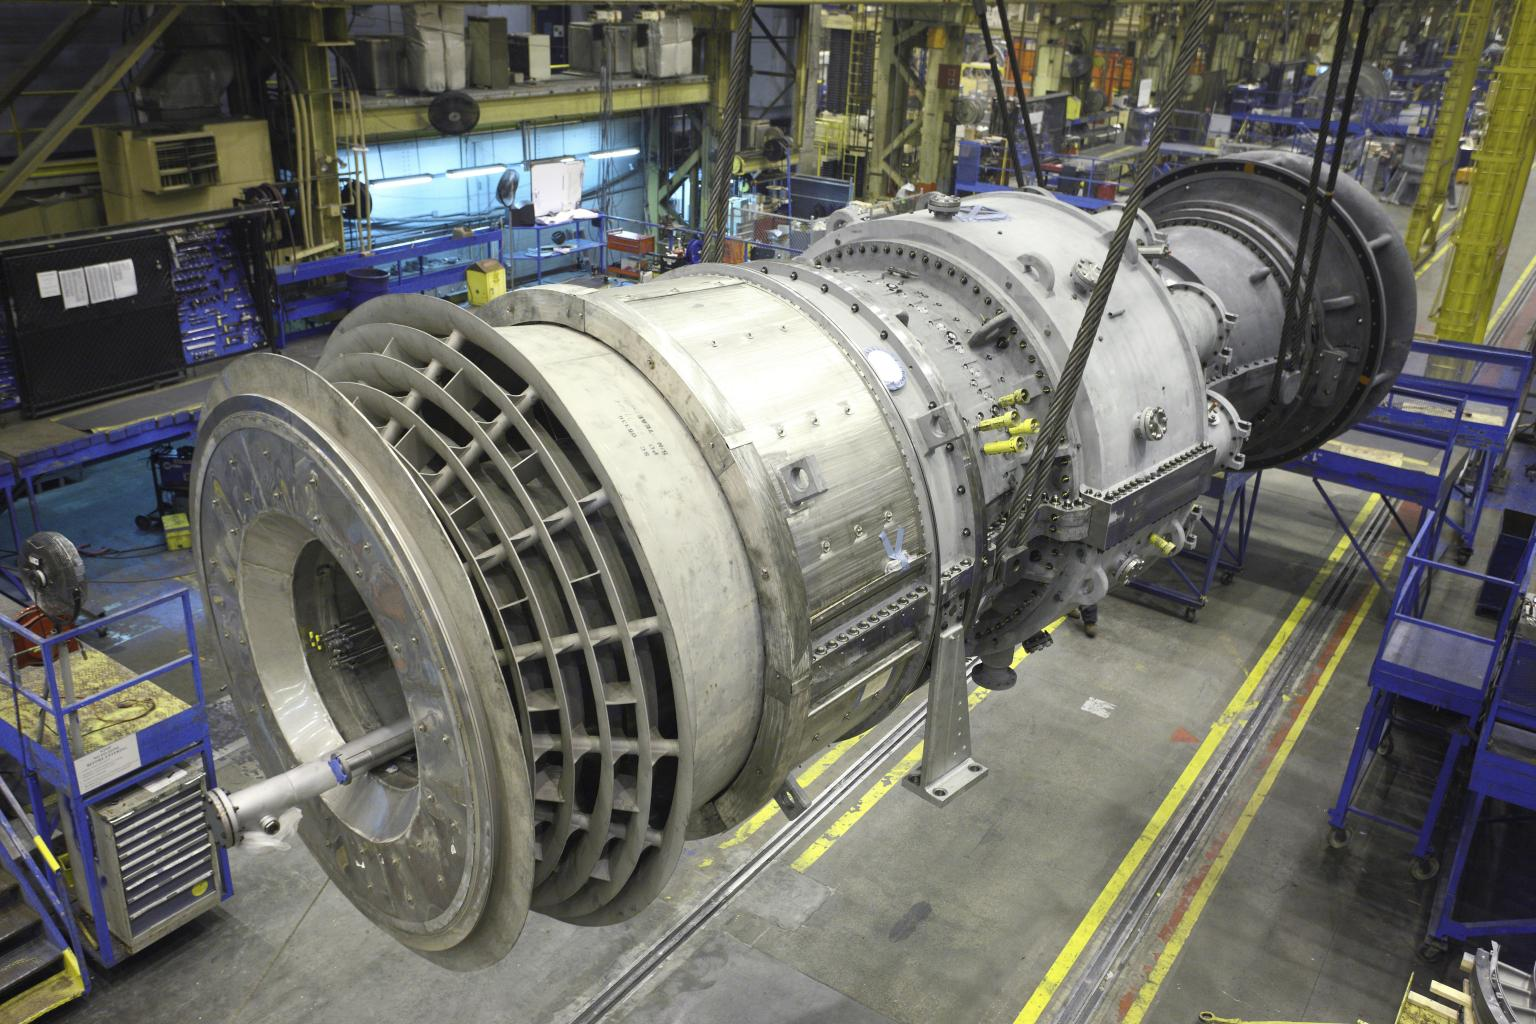 The 7E 3-series gas turbine features low emissions, helping users to meet increasingly stringent air quality standards